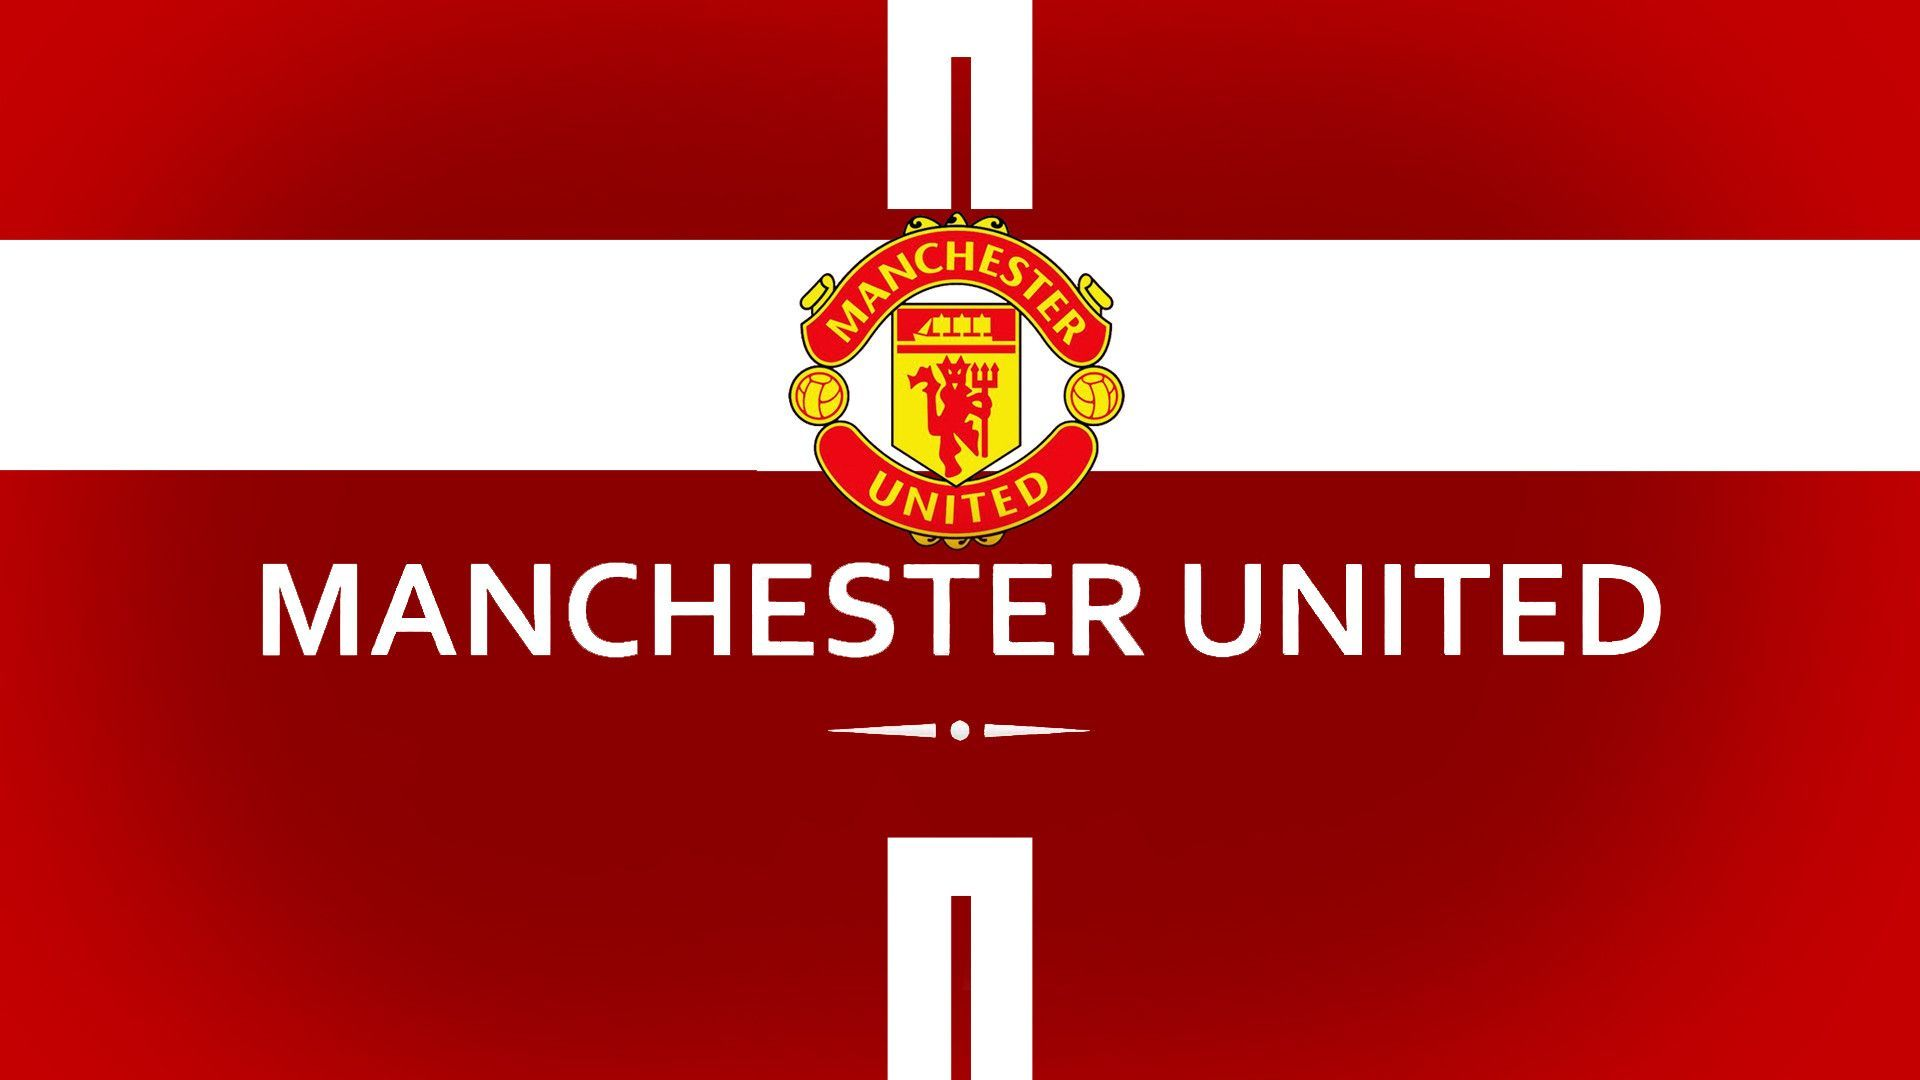 Manchester United Wallpapers Hd Wallpaper Cave With Images Manchester United Wallpaper Manchester United Logo Logo Wallpaper Hd